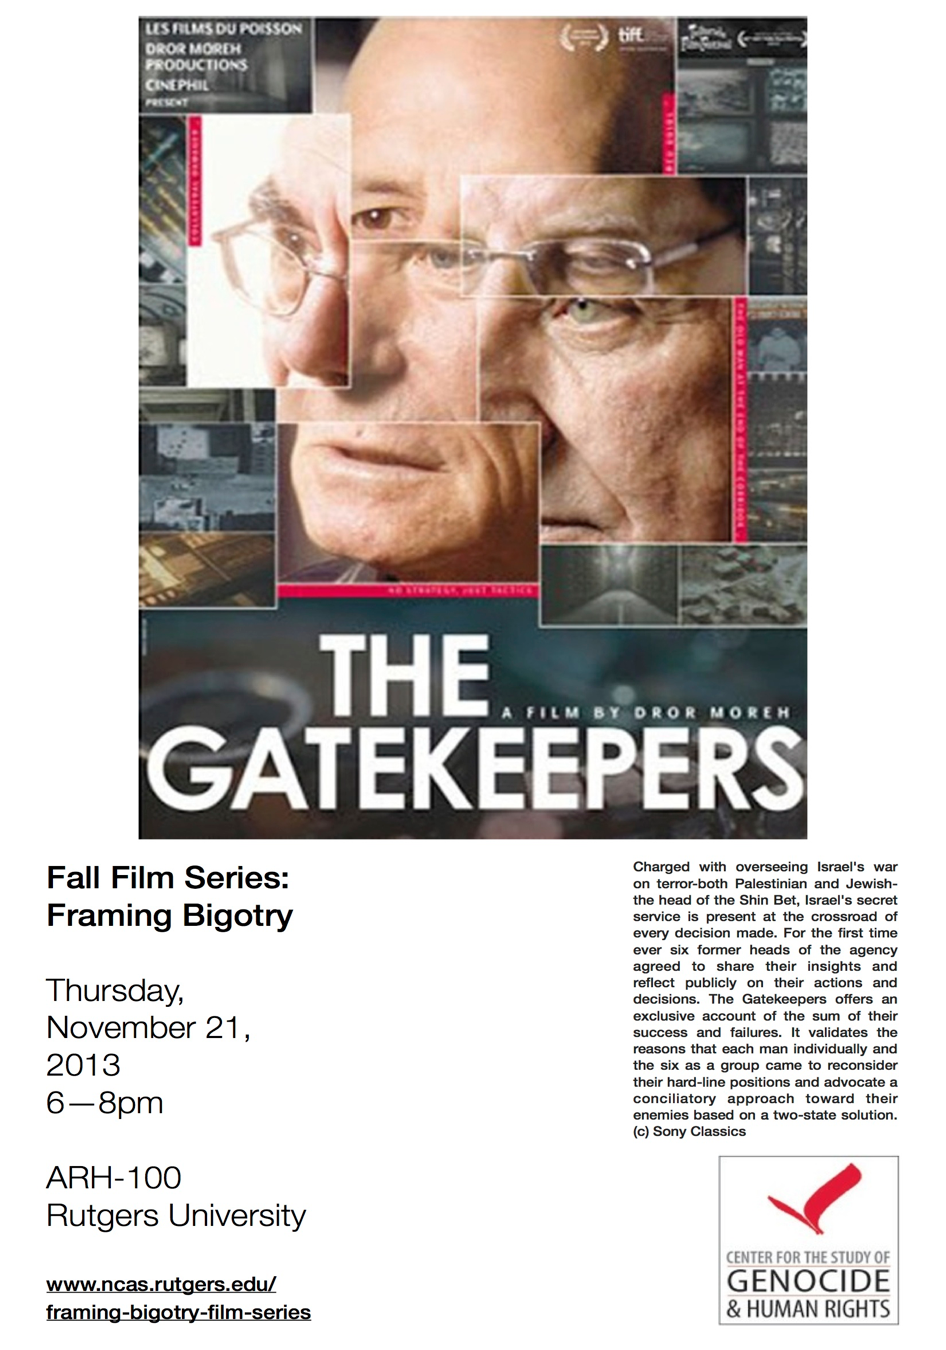 gate keepers movie flyer